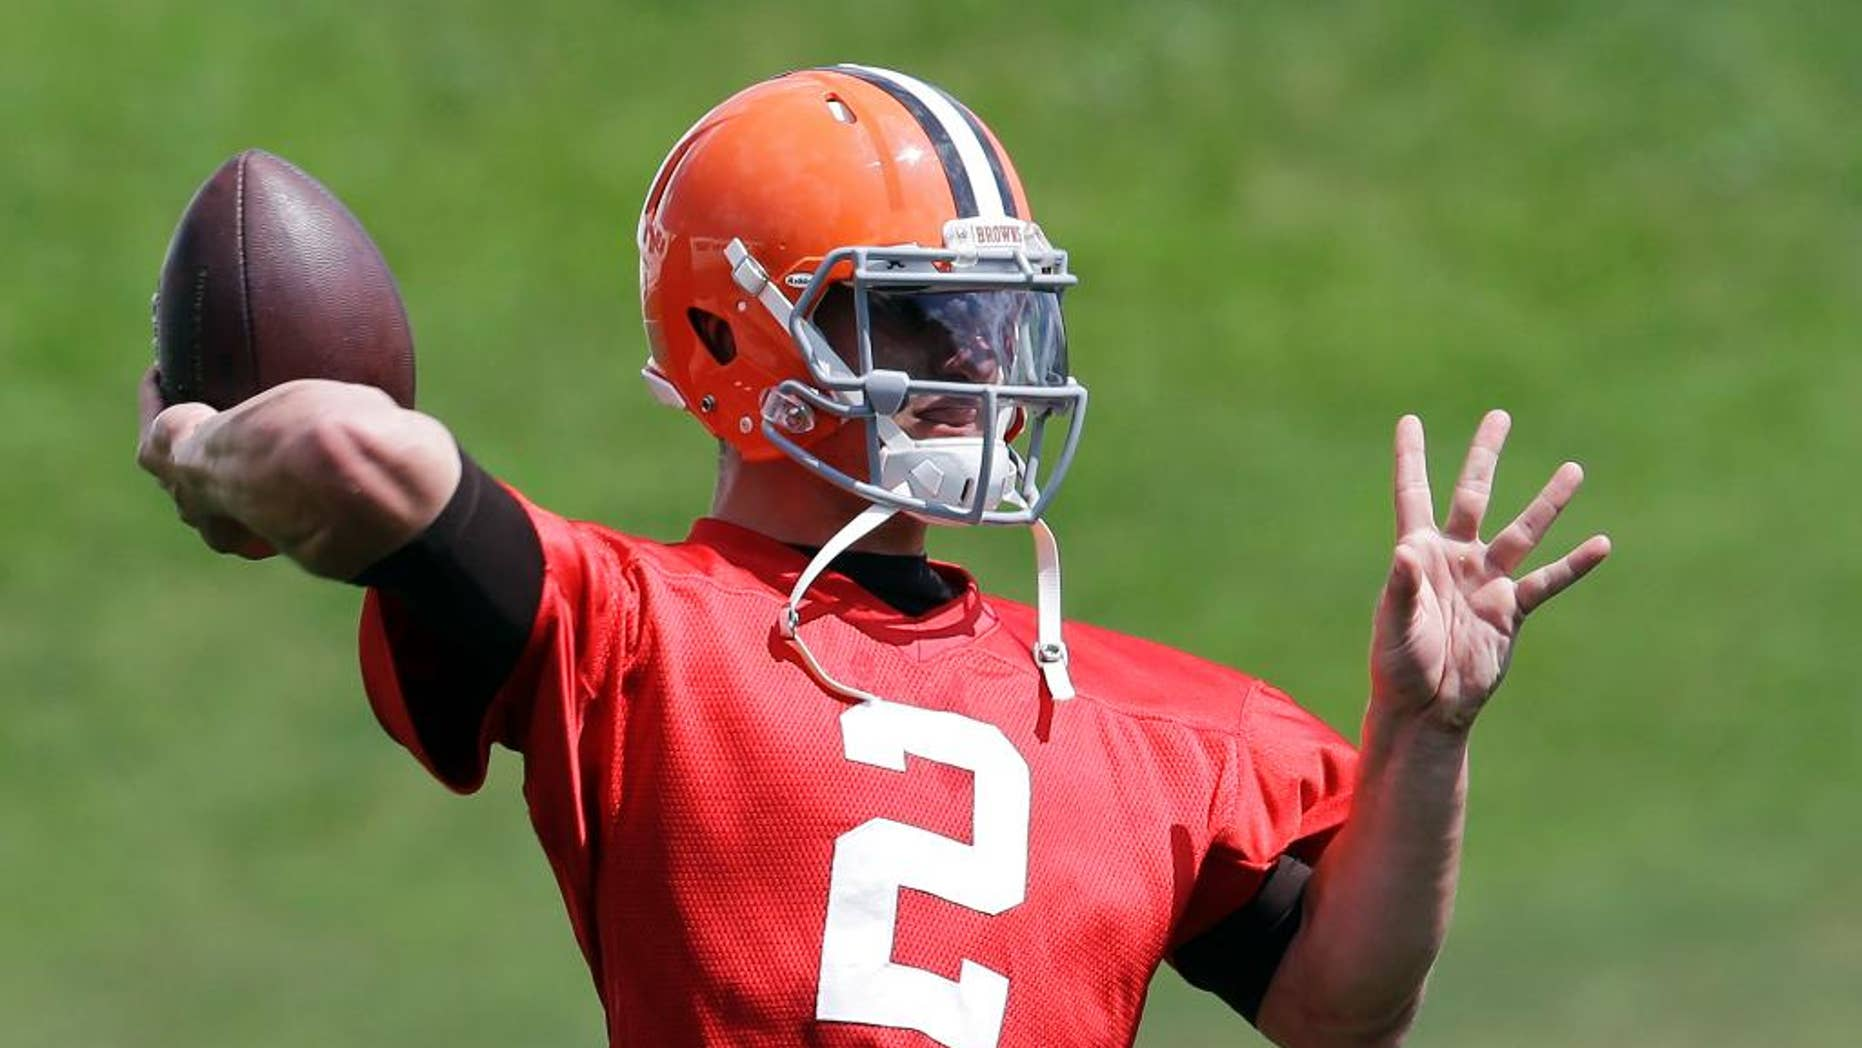 76291bacc Cleveland Browns quarterback Johnny Manziel passes during practice at the  NFL football team's facility in Berea